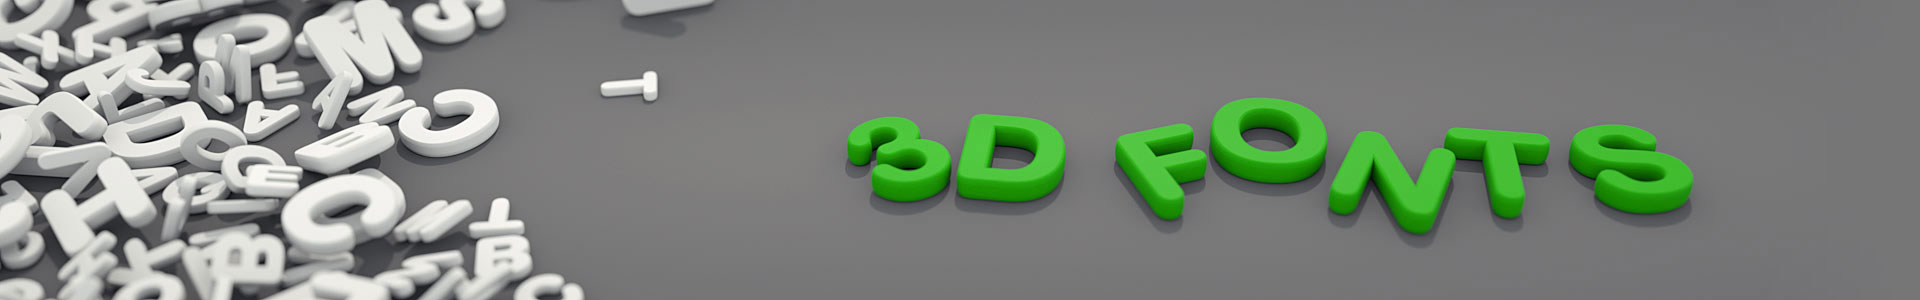 3d fonts collections, numbers, letters and signs at affordable prices